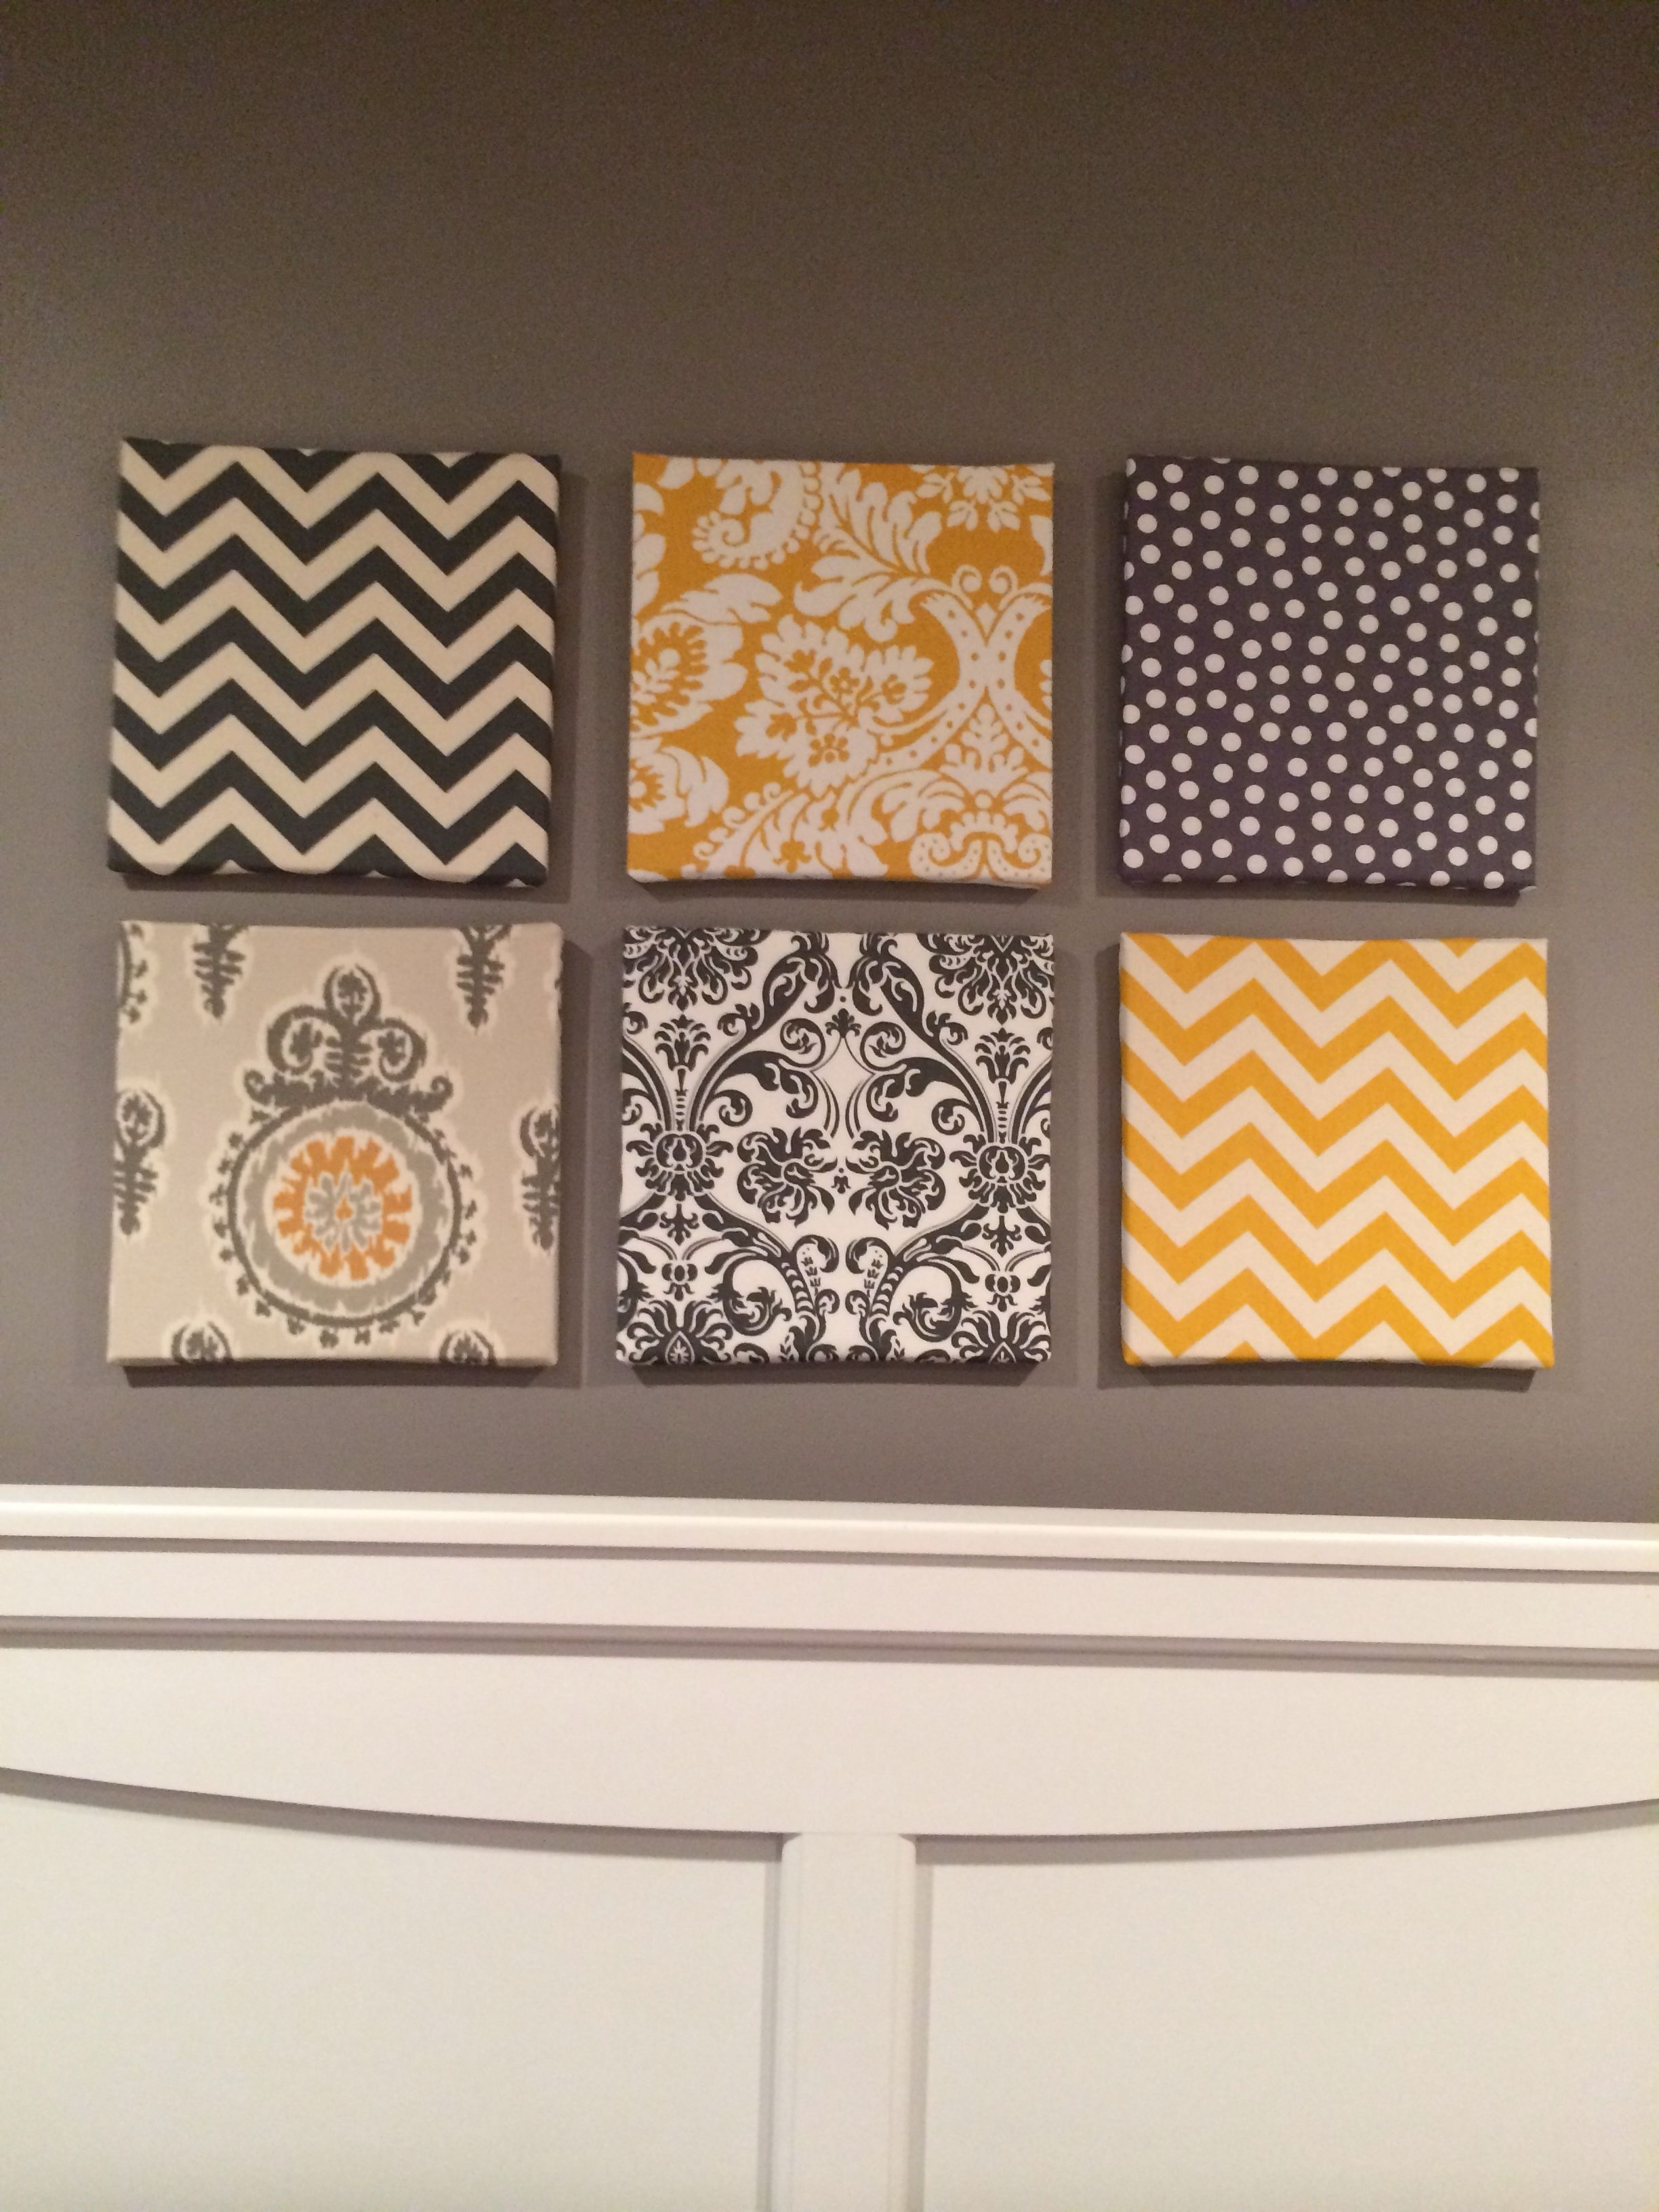 Cheap Fabric Wall Art With Regard To Widely Used My Fabric Over Canvas Wall Art For My Gray And Yellow Themed Room (Gallery 11 of 15)